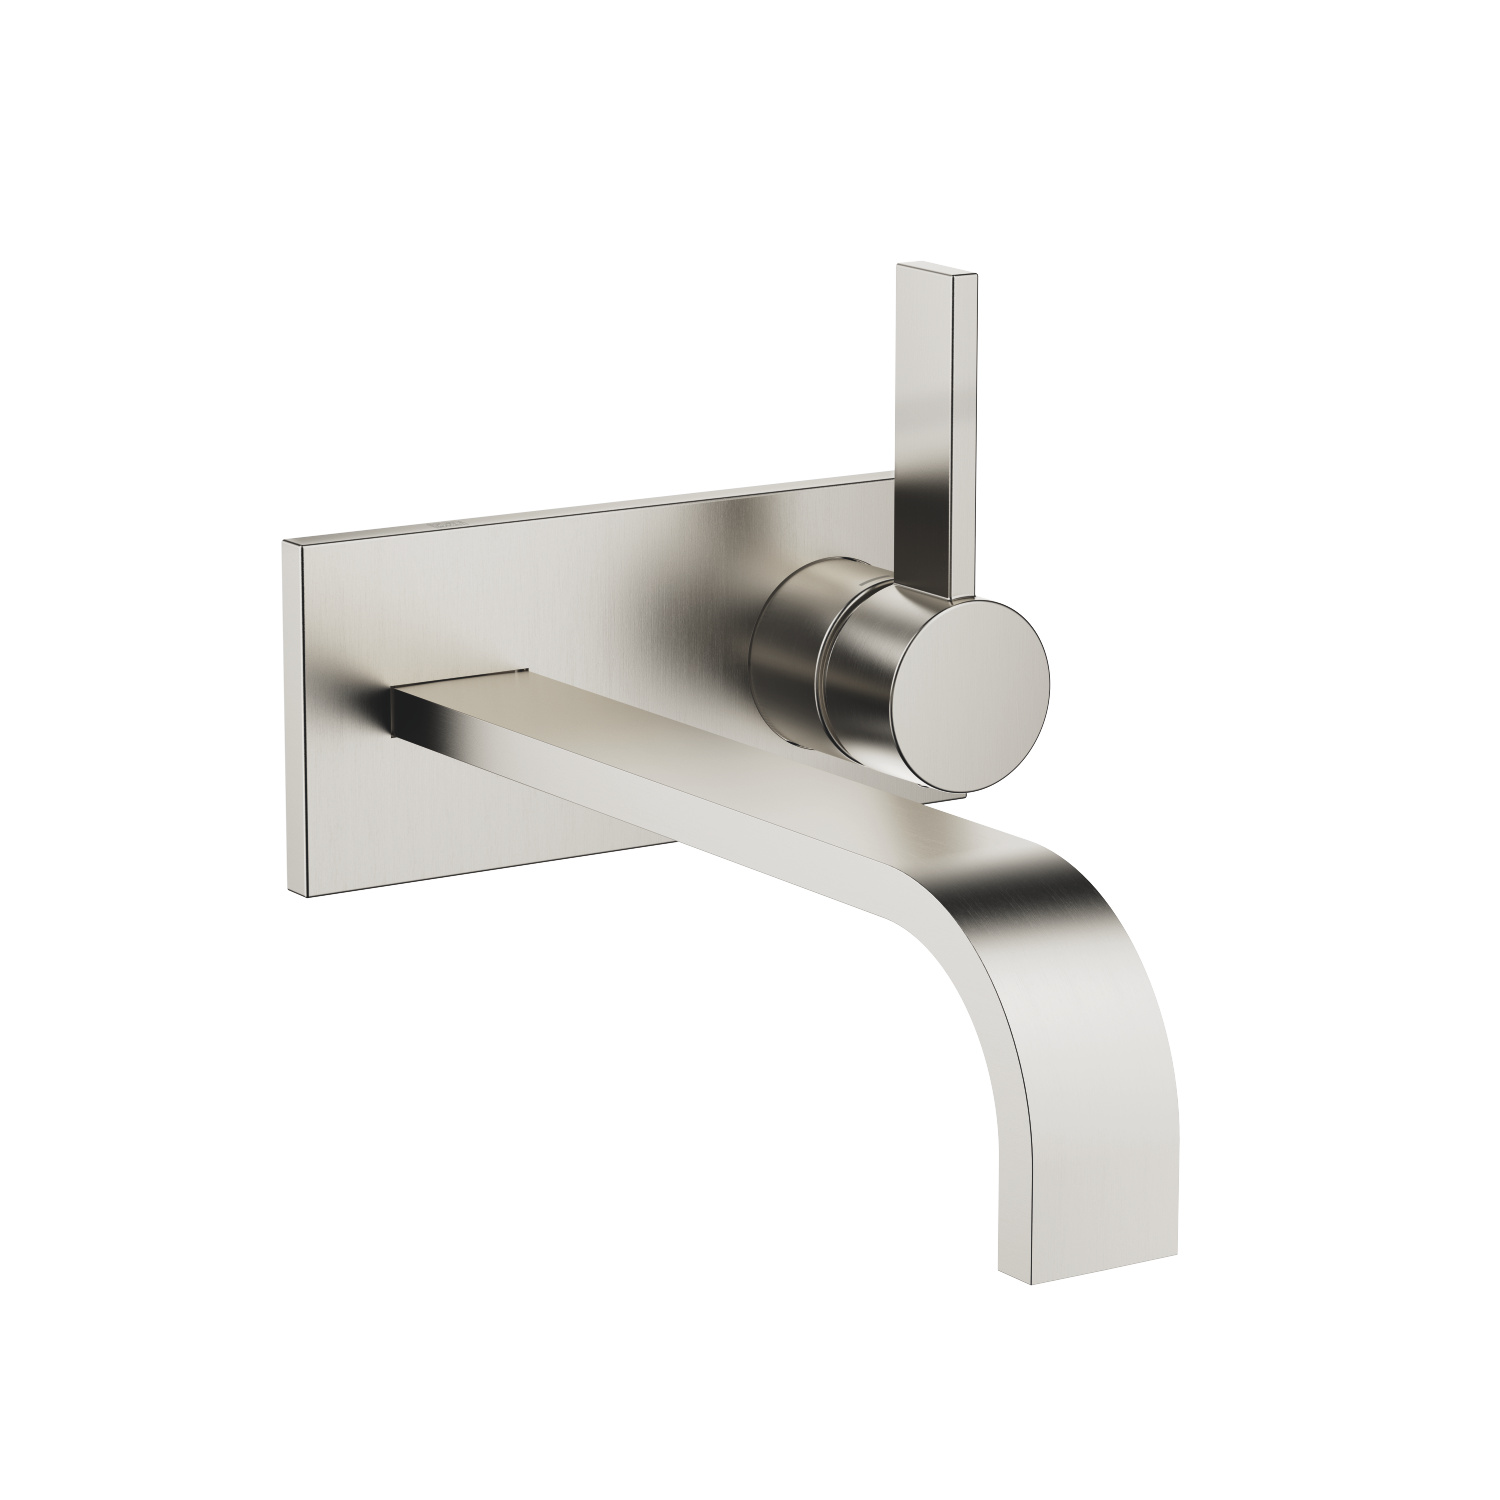 Wall-mounted single-lever basin mixer with cover plate without pop-up waste - platinum matt